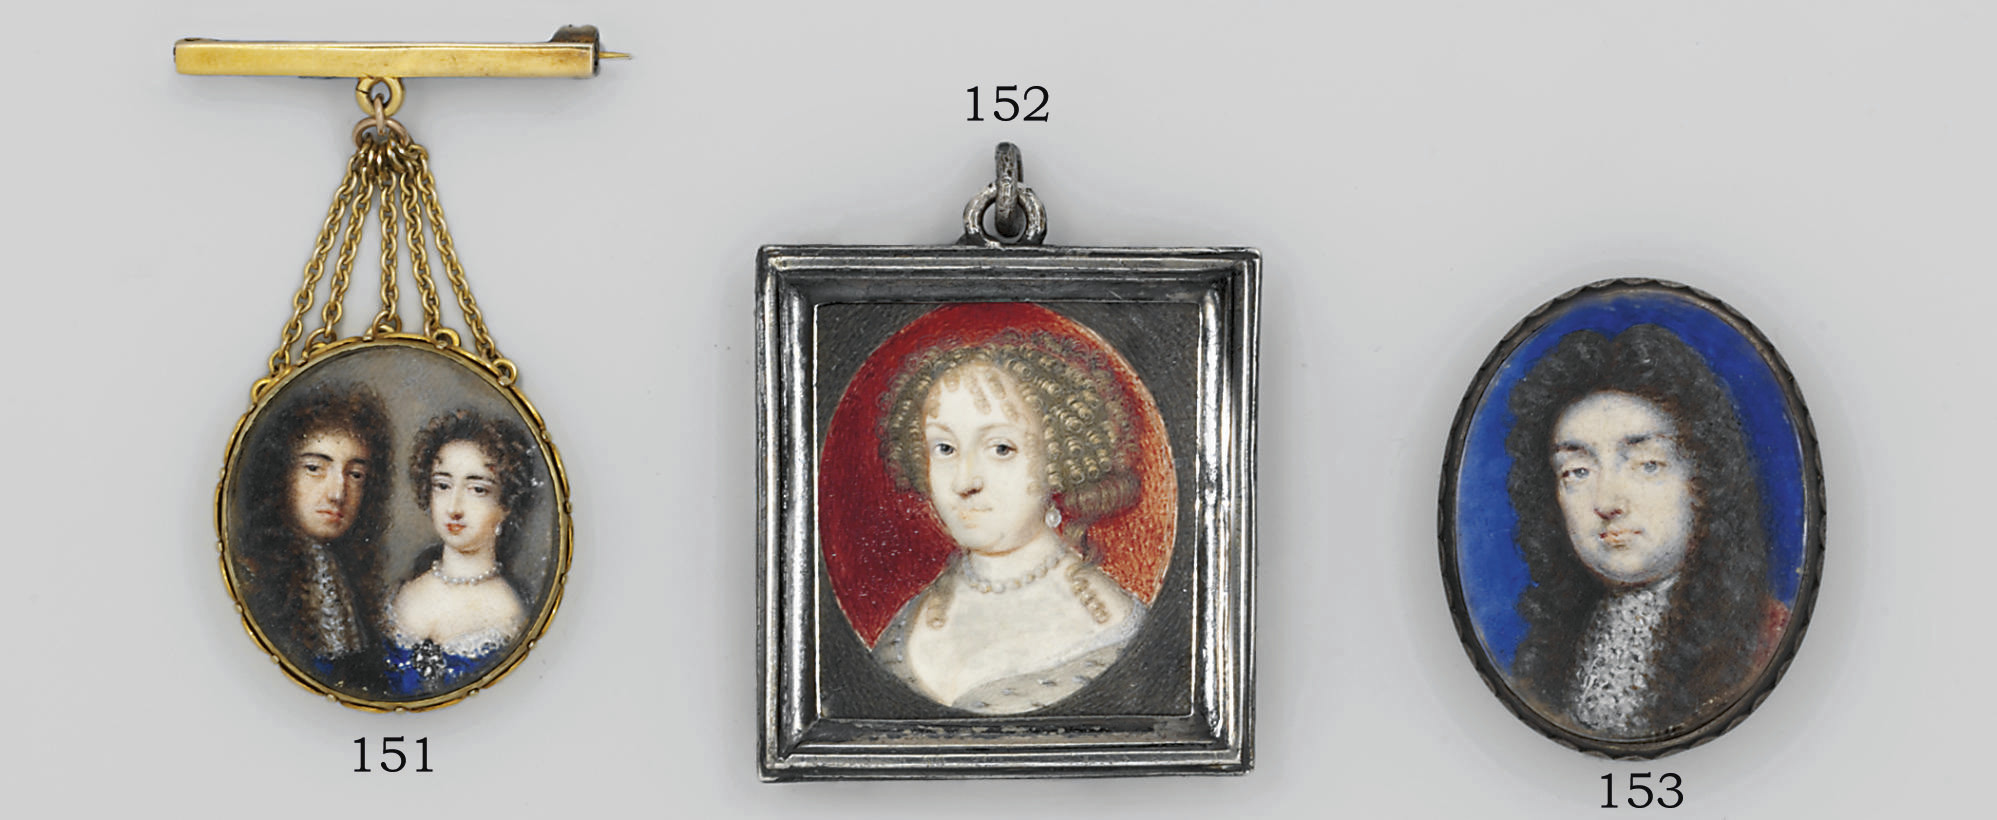 Princess Wilhelmine Ernestina of Denmark (1650-1706), in a white dress with a fur stole wrapped around her shoulders, pearl necklace, drop-pearl earring, her brown hair dressed in ringlets; red background